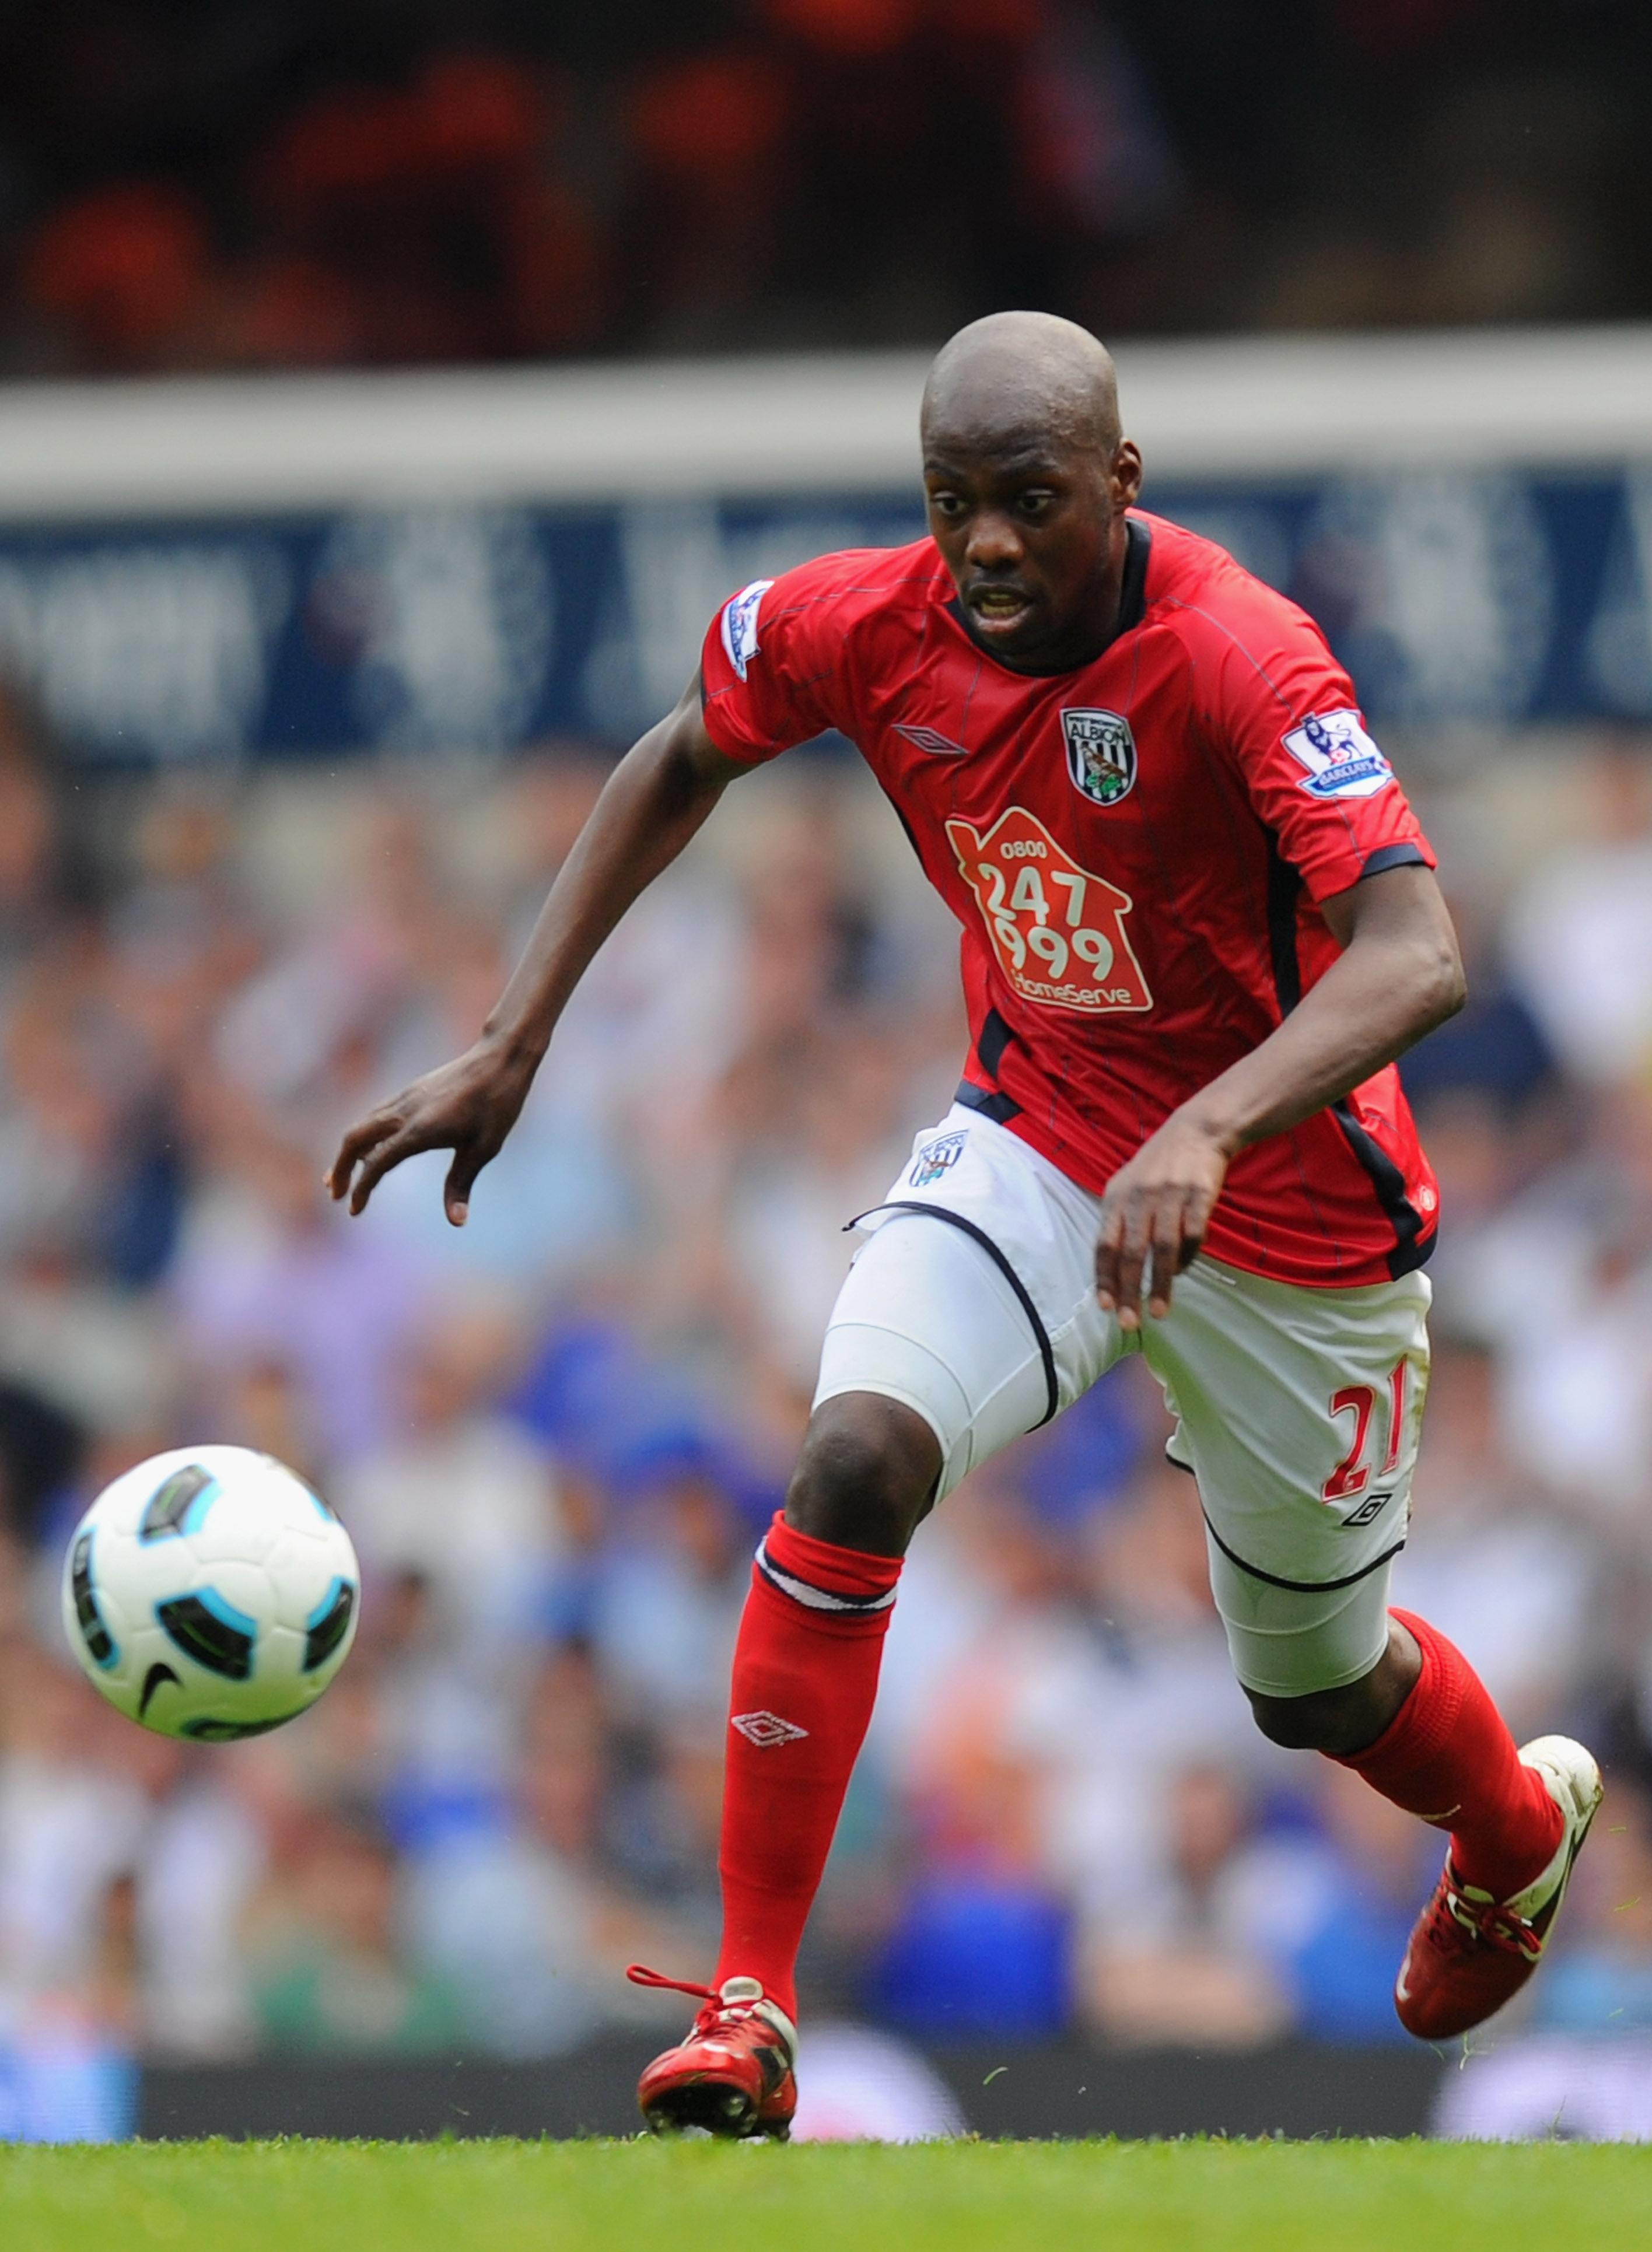 73c226c8566 LONDON, ENGLAND - APRIL 23: Youssouf Mulumbu of West Brom on the ball during